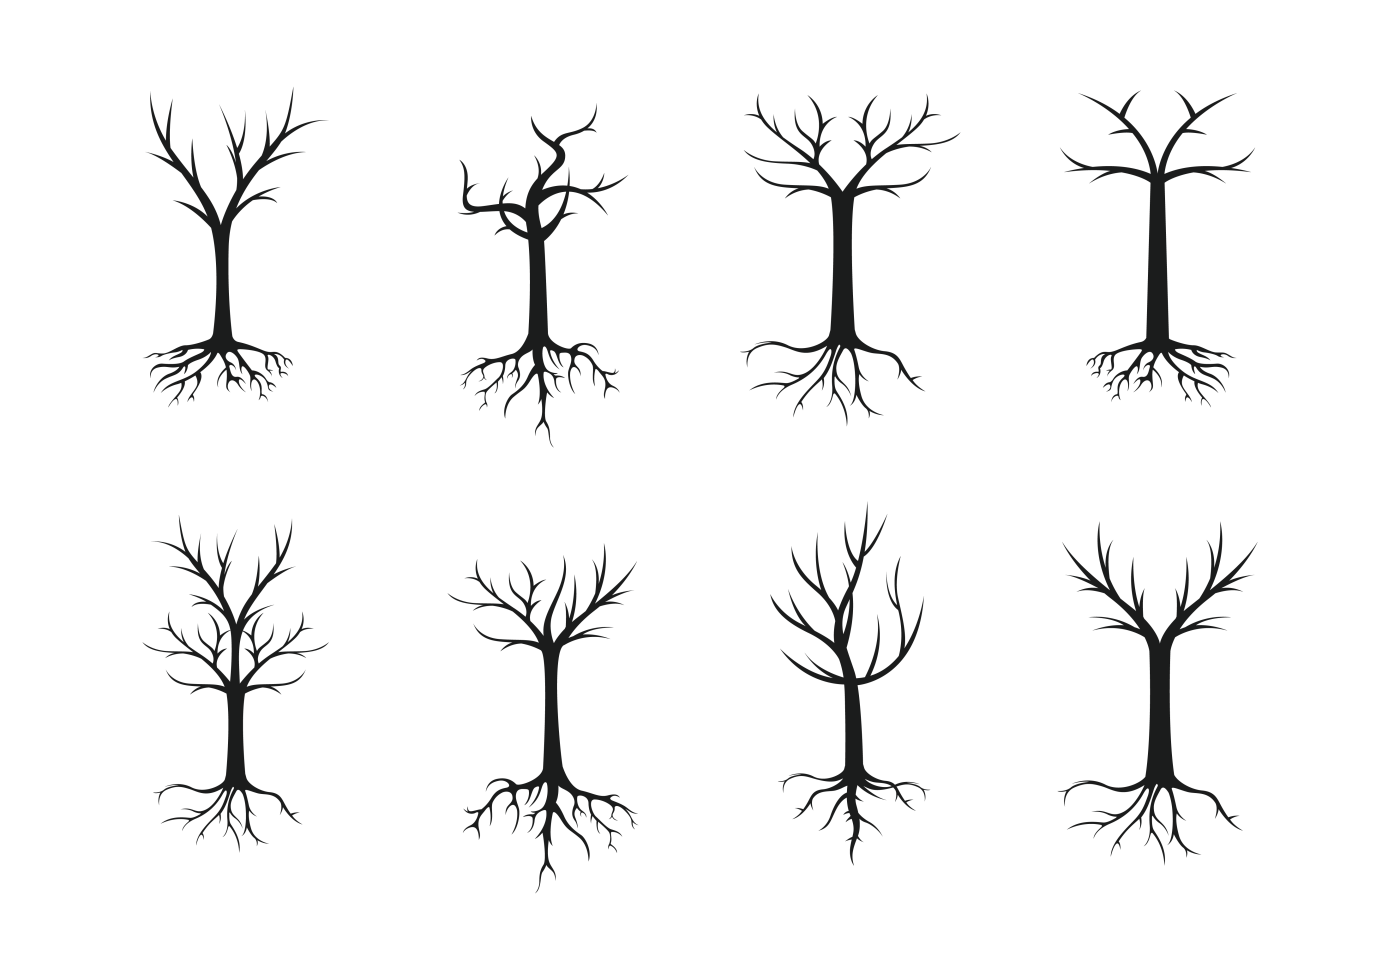 Tree With Roots Silhouette Vector - Download Free Vectors ...